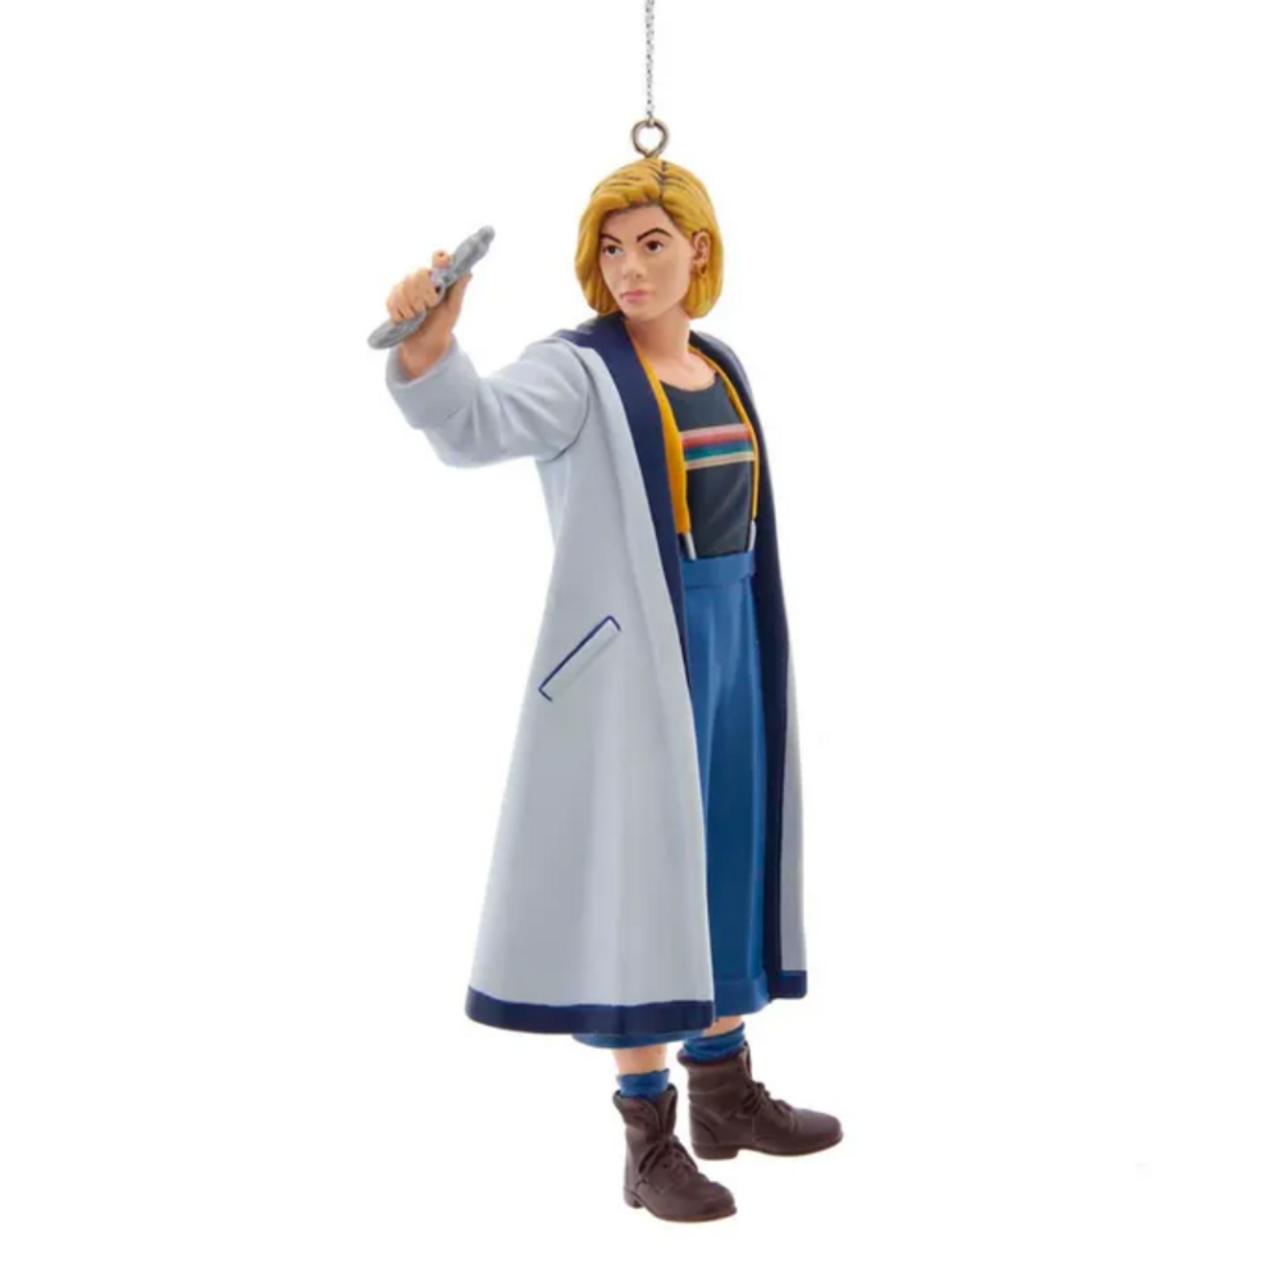 13th Doctor With Sonic Screwdriver Ornament (v. 2020)